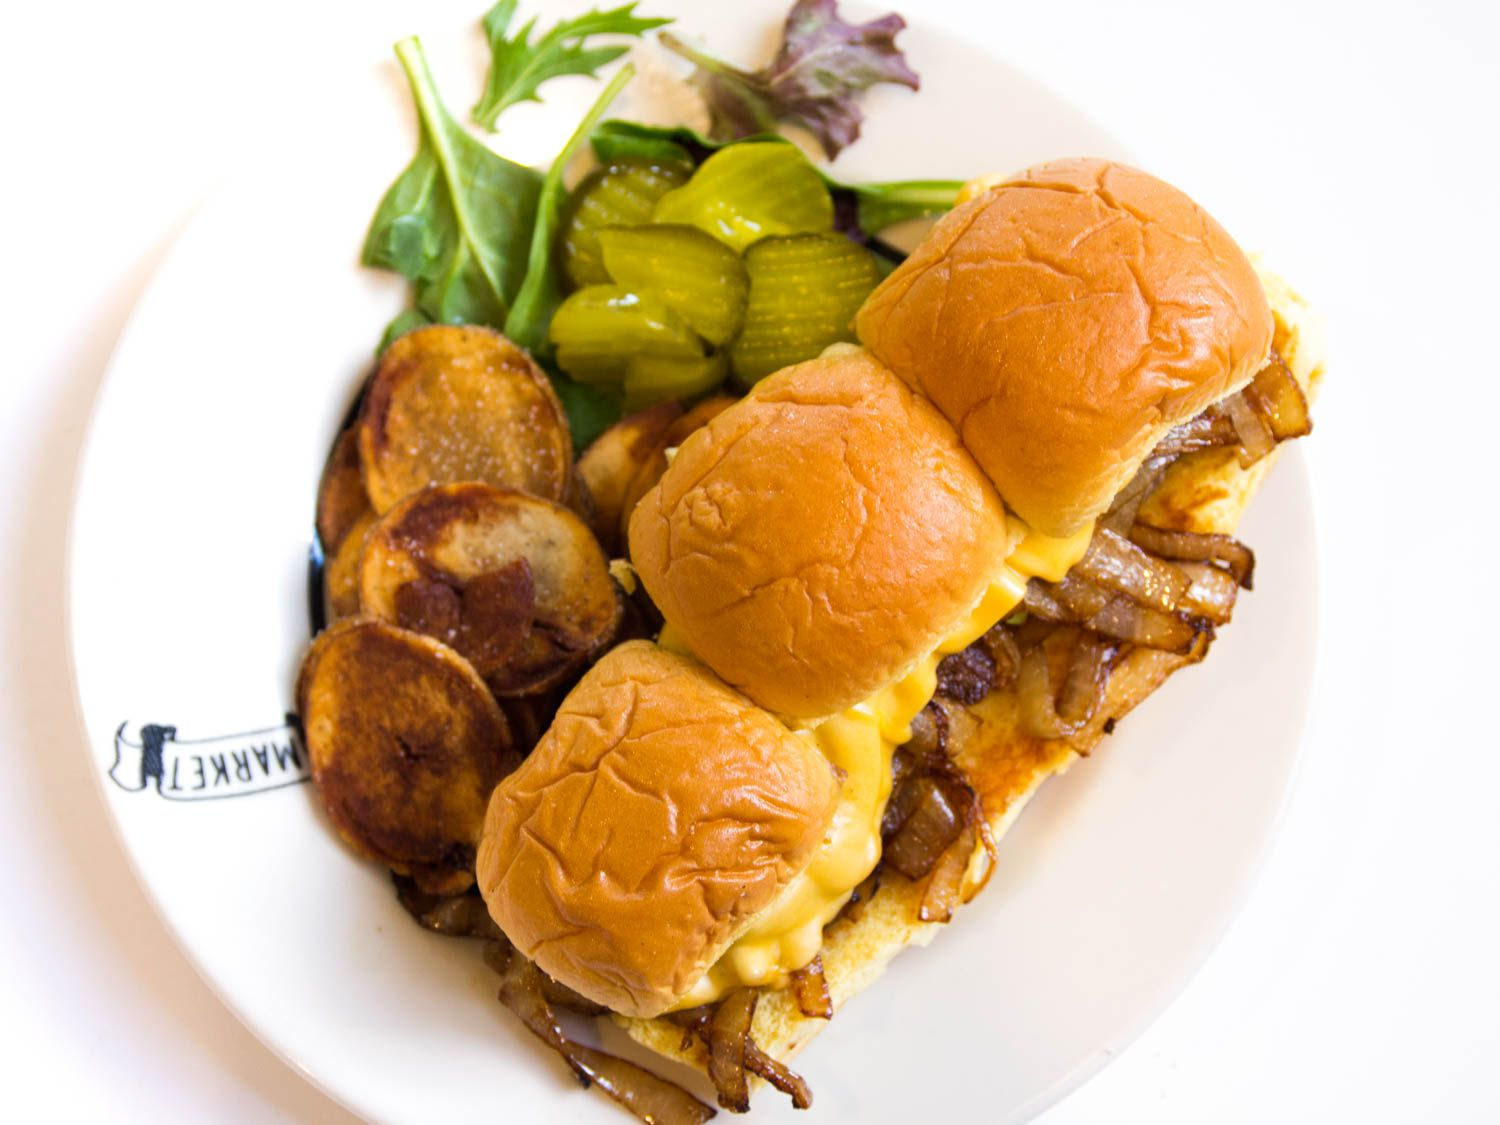 Three slider sandwiches on a plate, with chips, pickles, and greens